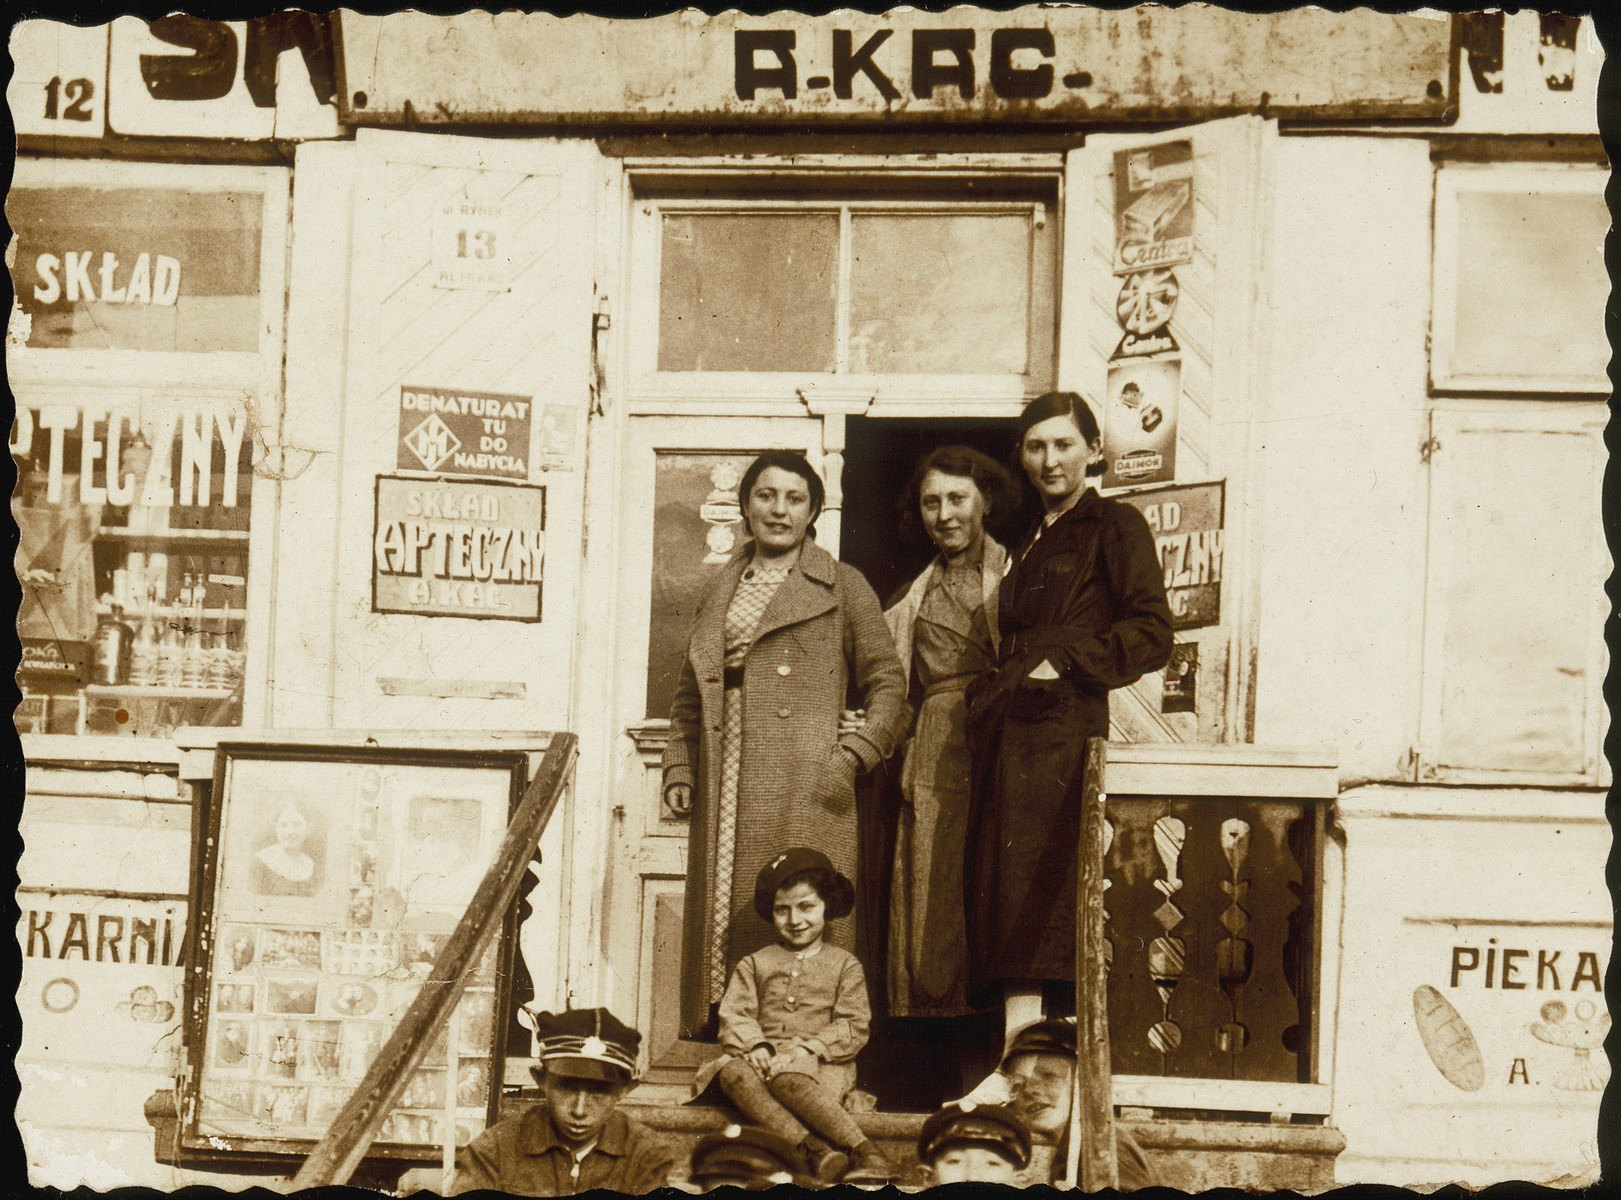 A group of friends stands on the steps of Alte Katz's pharmacy.   (right to left) Esther (Etele) Katz, her sister Shoshana, and their friend Fania Botwiniki.  Seated on the steps (right to left): Avigdor Katz, his nephew Yitzhak Sonenson, Yitzhak's cousin Gittele Sonenson, and two friends.  To the right of the steps is the entrance to the bakery  below street level.  On the left is a display of photos from the Katz photography studio.    Only Esther and Yitzhak survived the war.